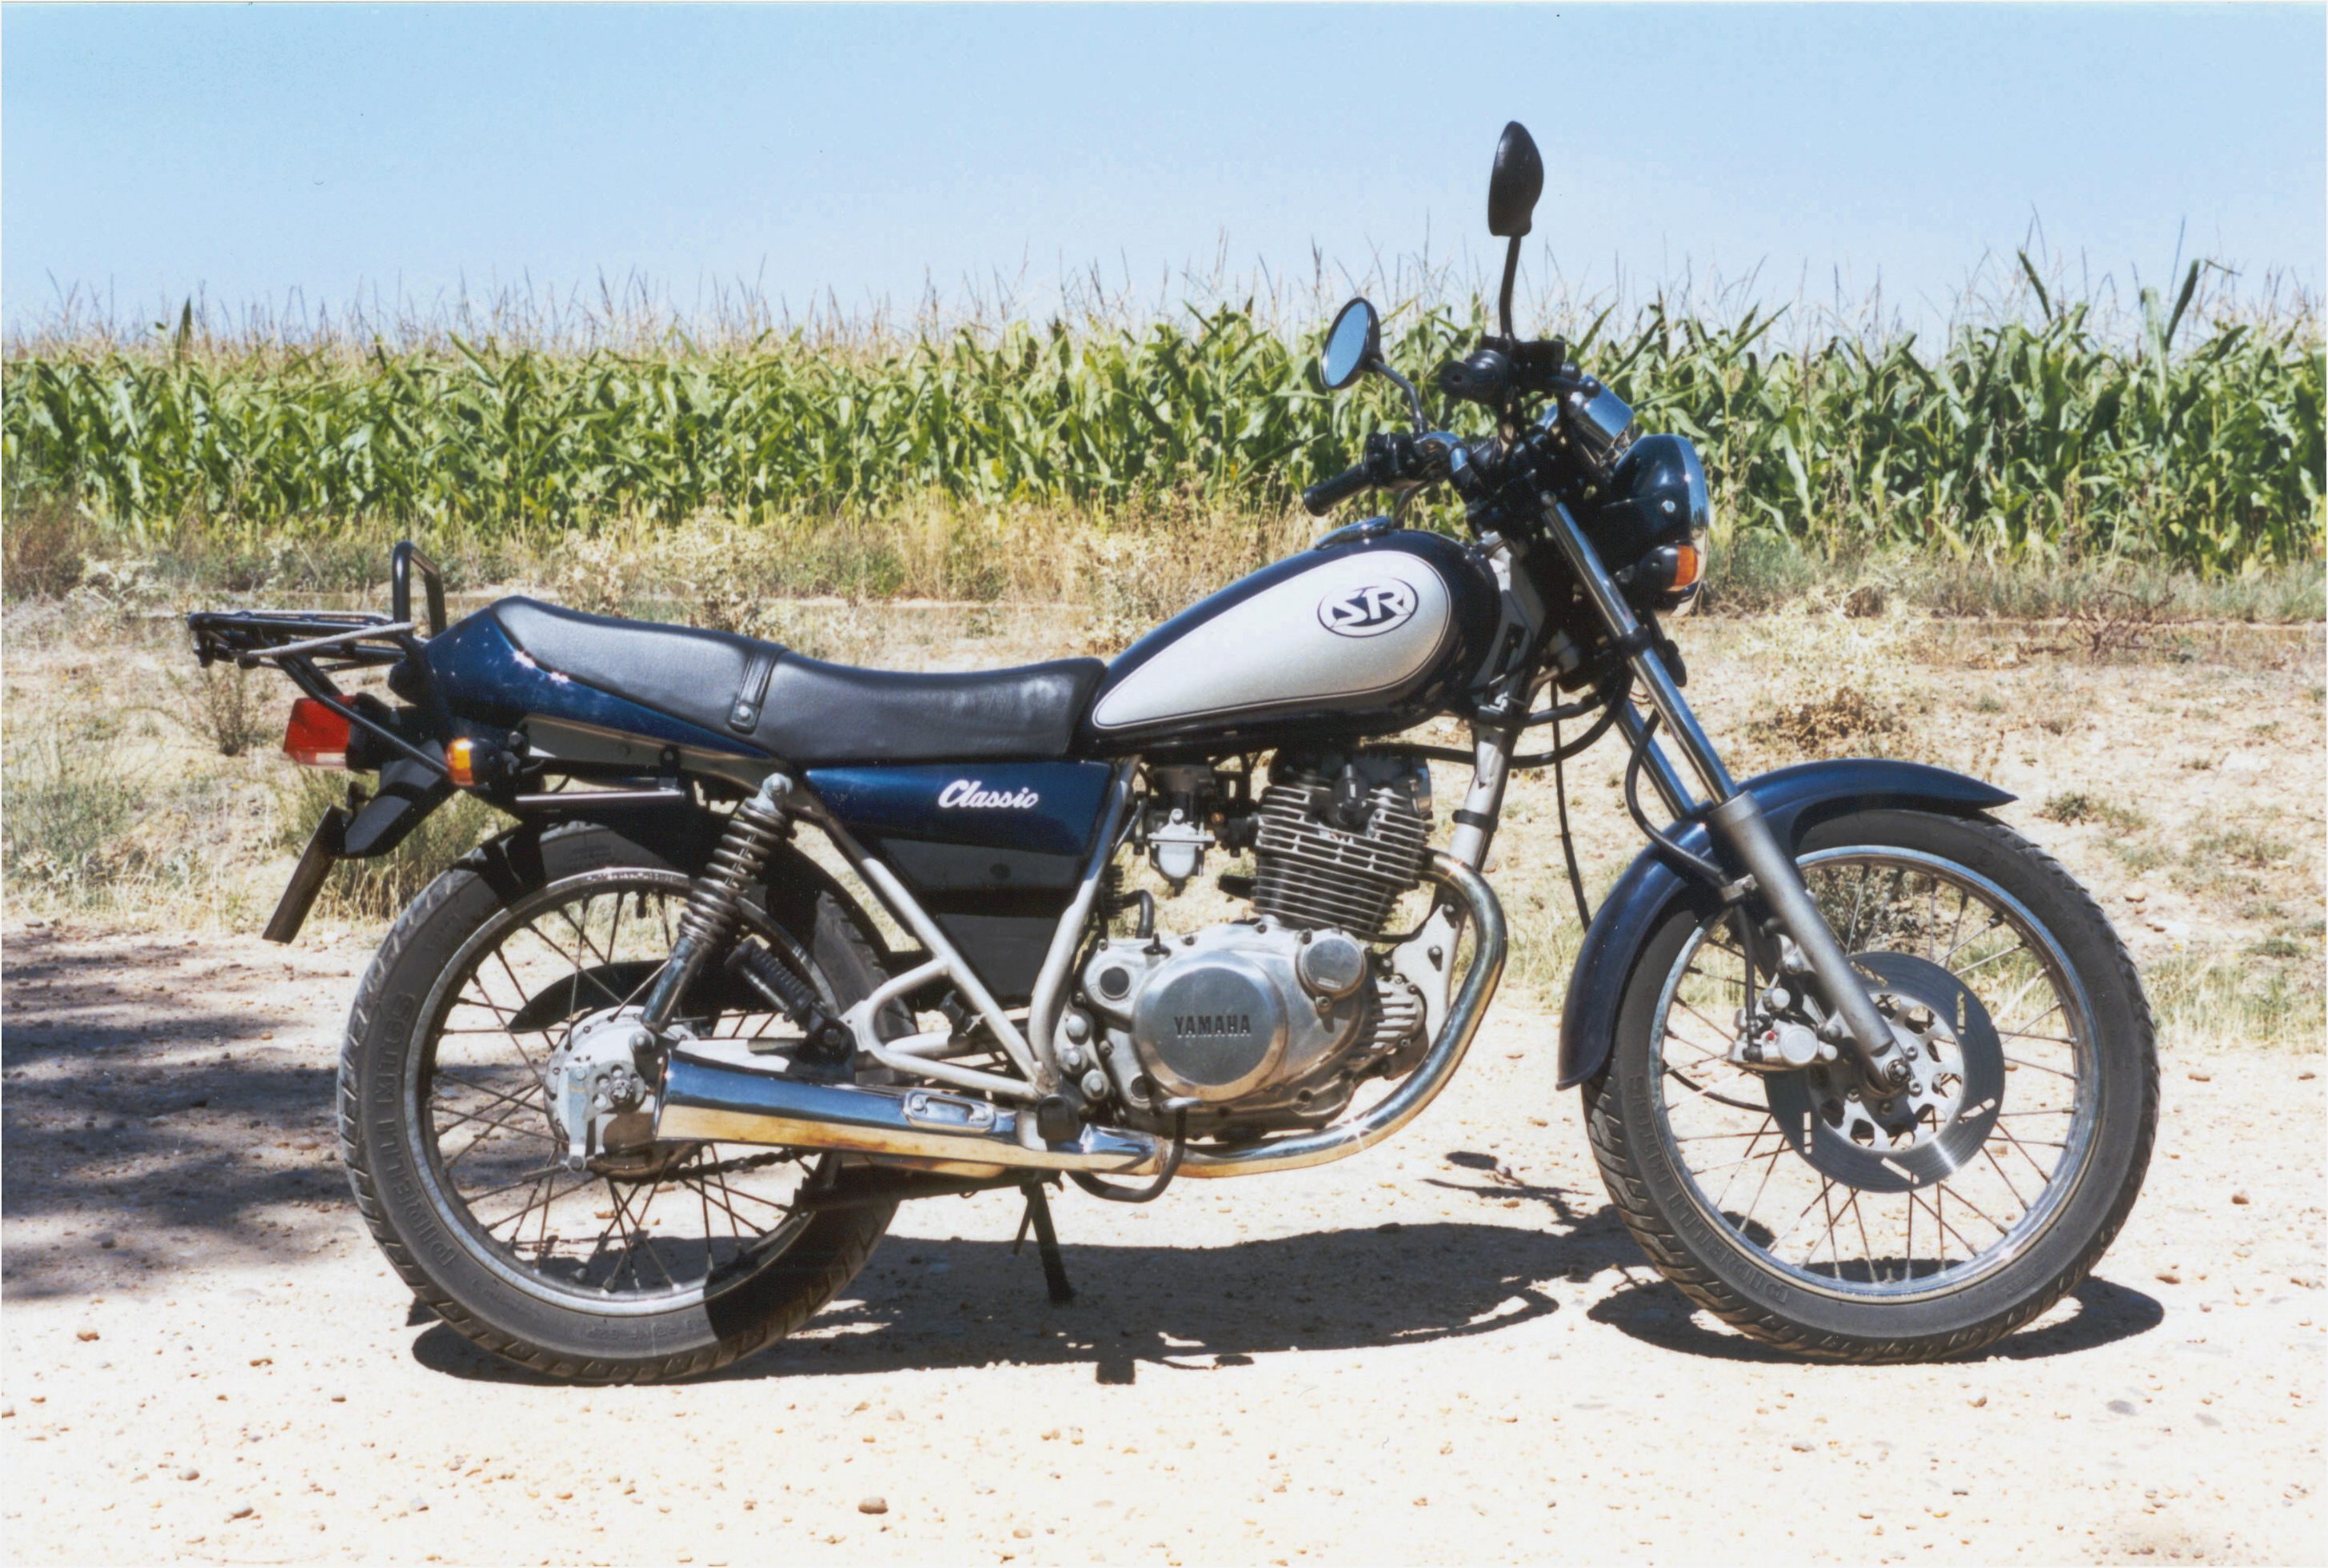 1987 yamaha sr 125 pics specs and information. Black Bedroom Furniture Sets. Home Design Ideas